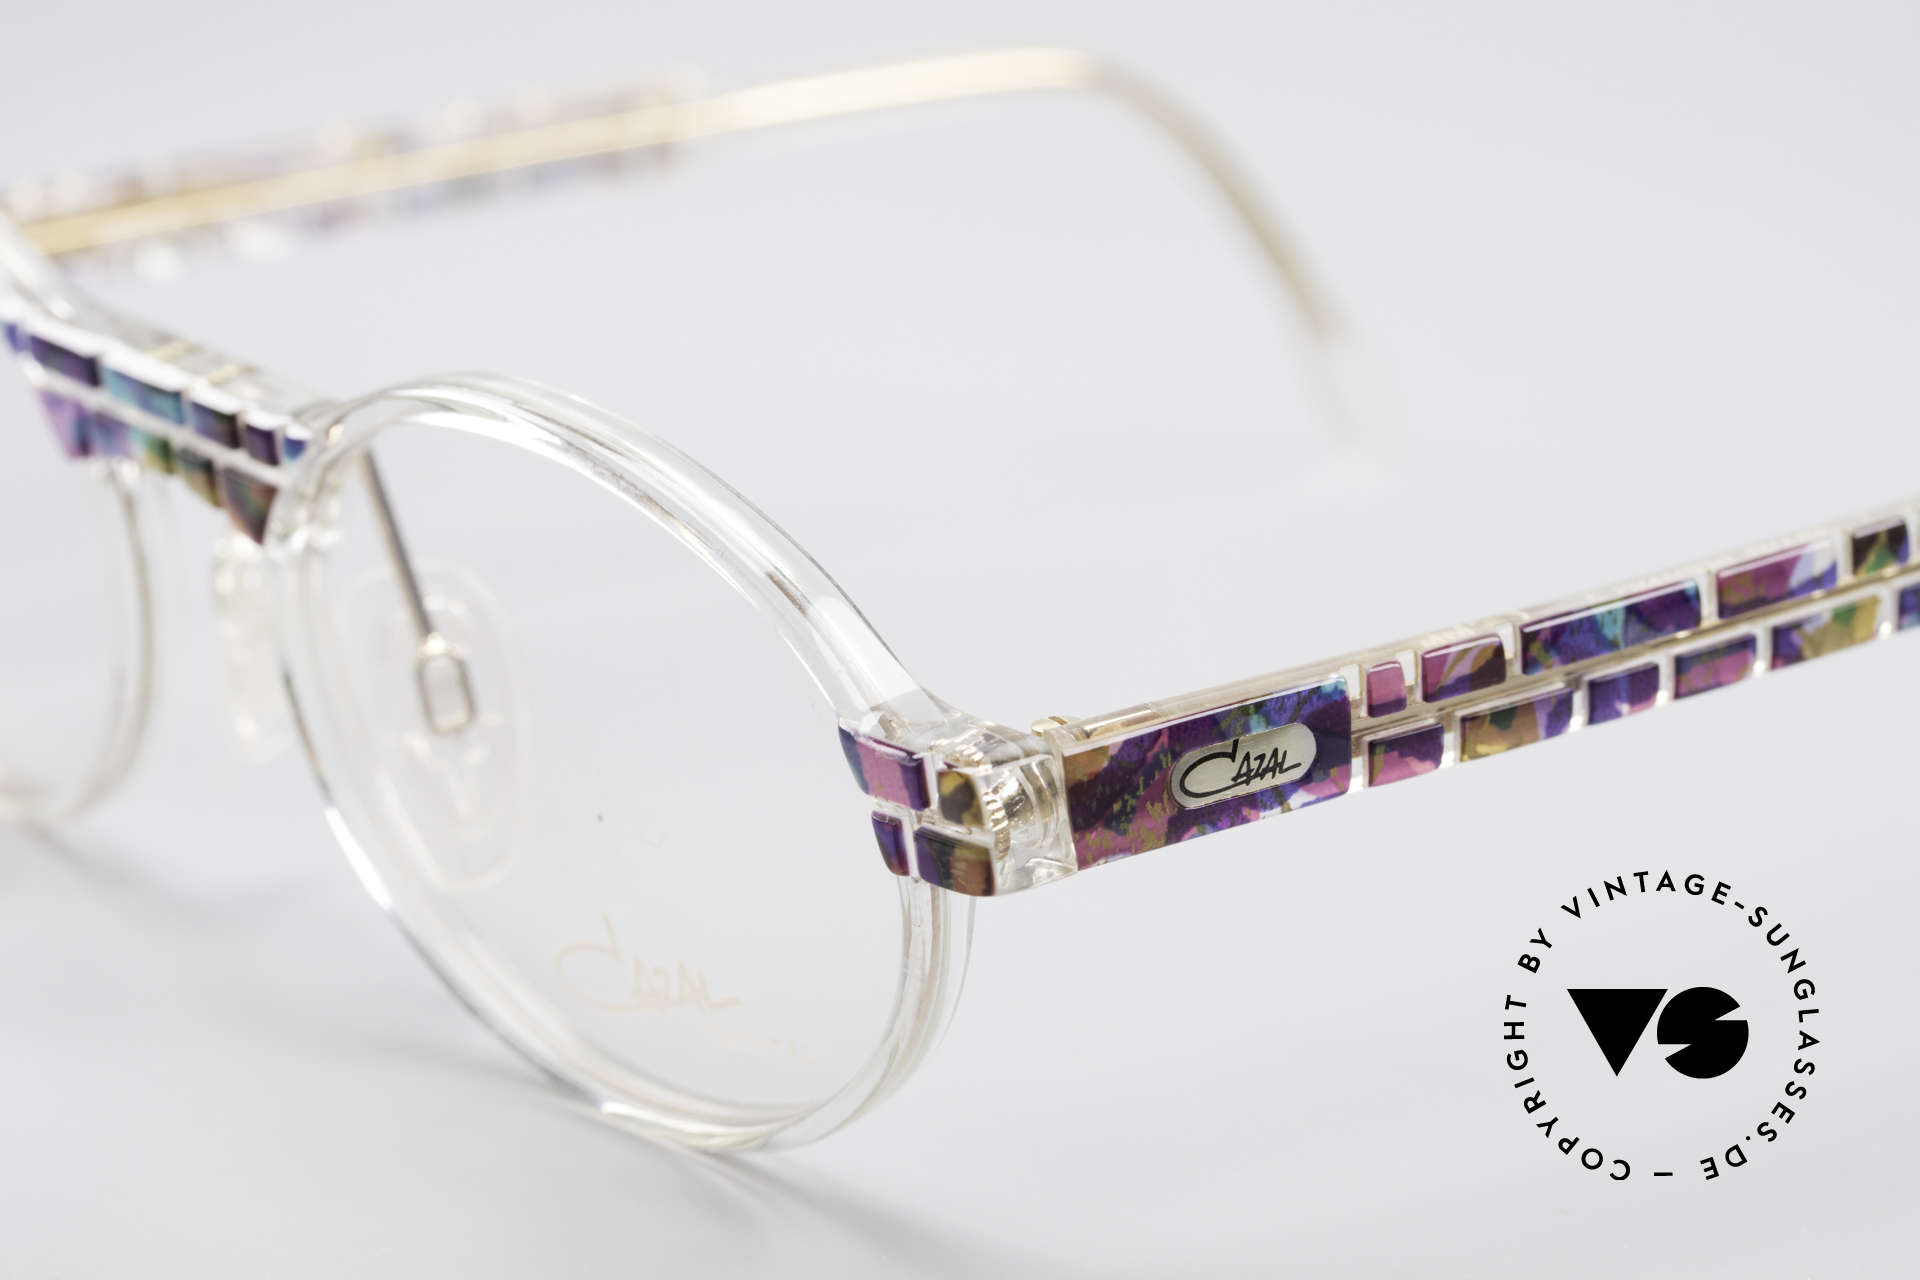 Cazal 510 Crystal Limited Vintage Glasses, fantastic combination of shape, colors and materials, Made for Men and Women